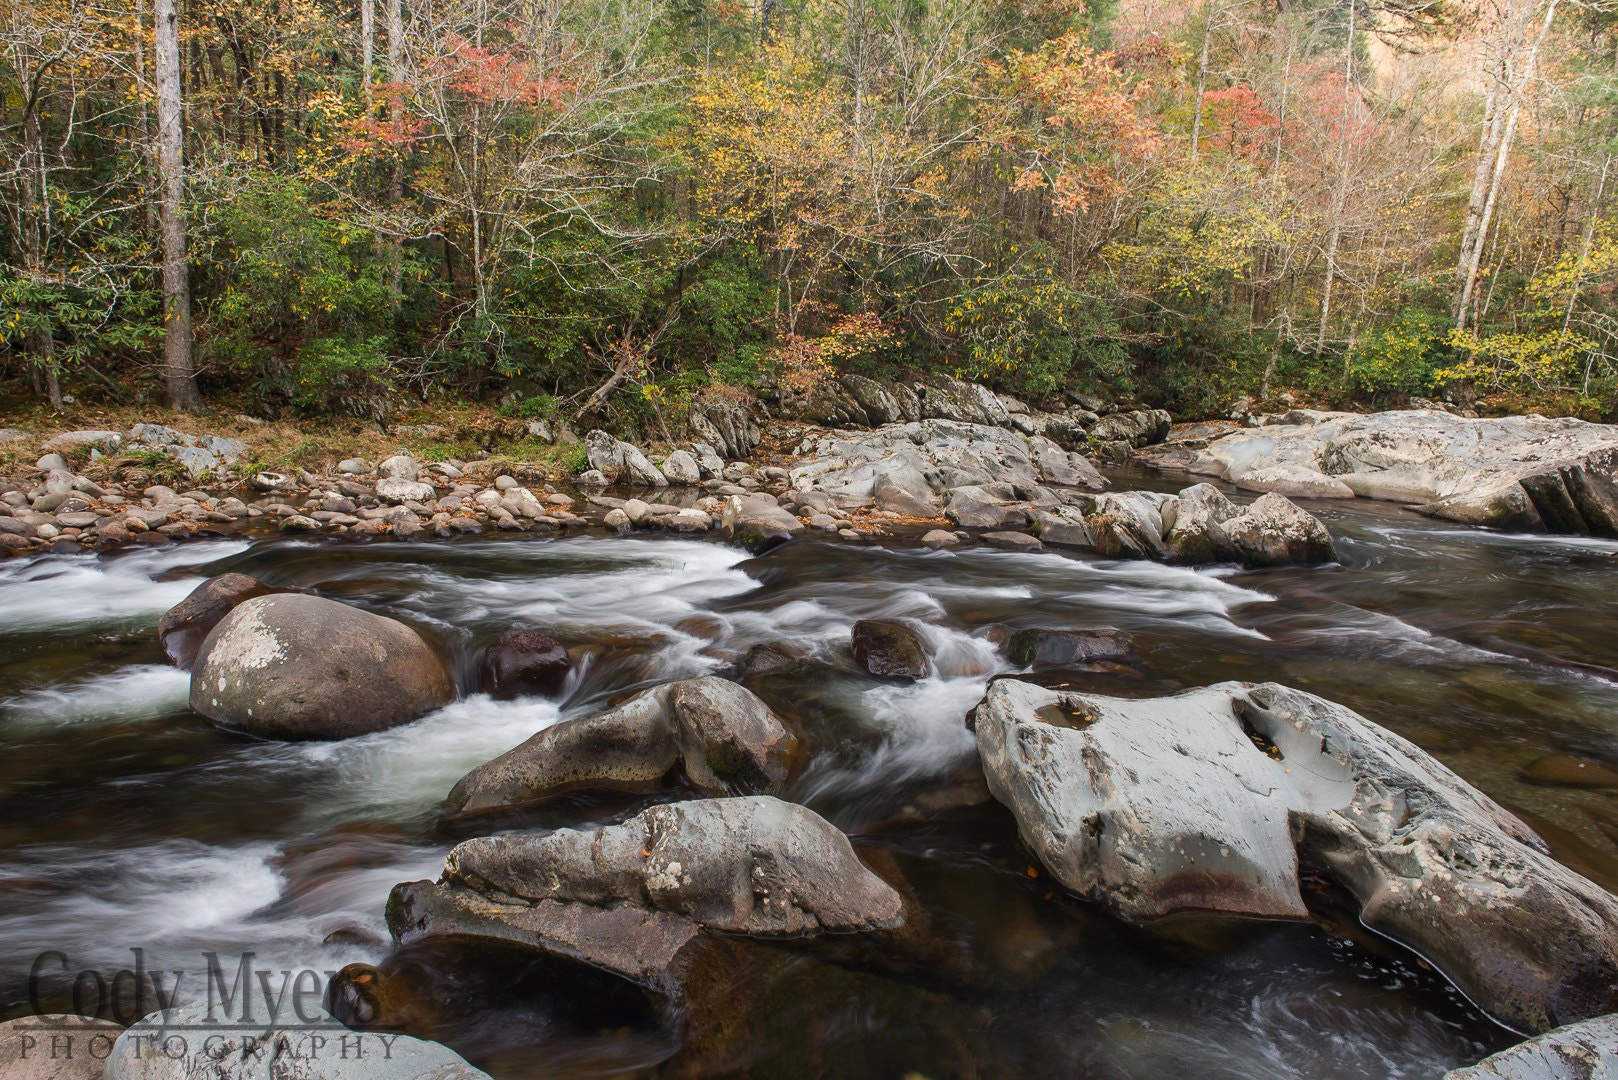 Photograph Greenbriar River by cody  myers on 500px